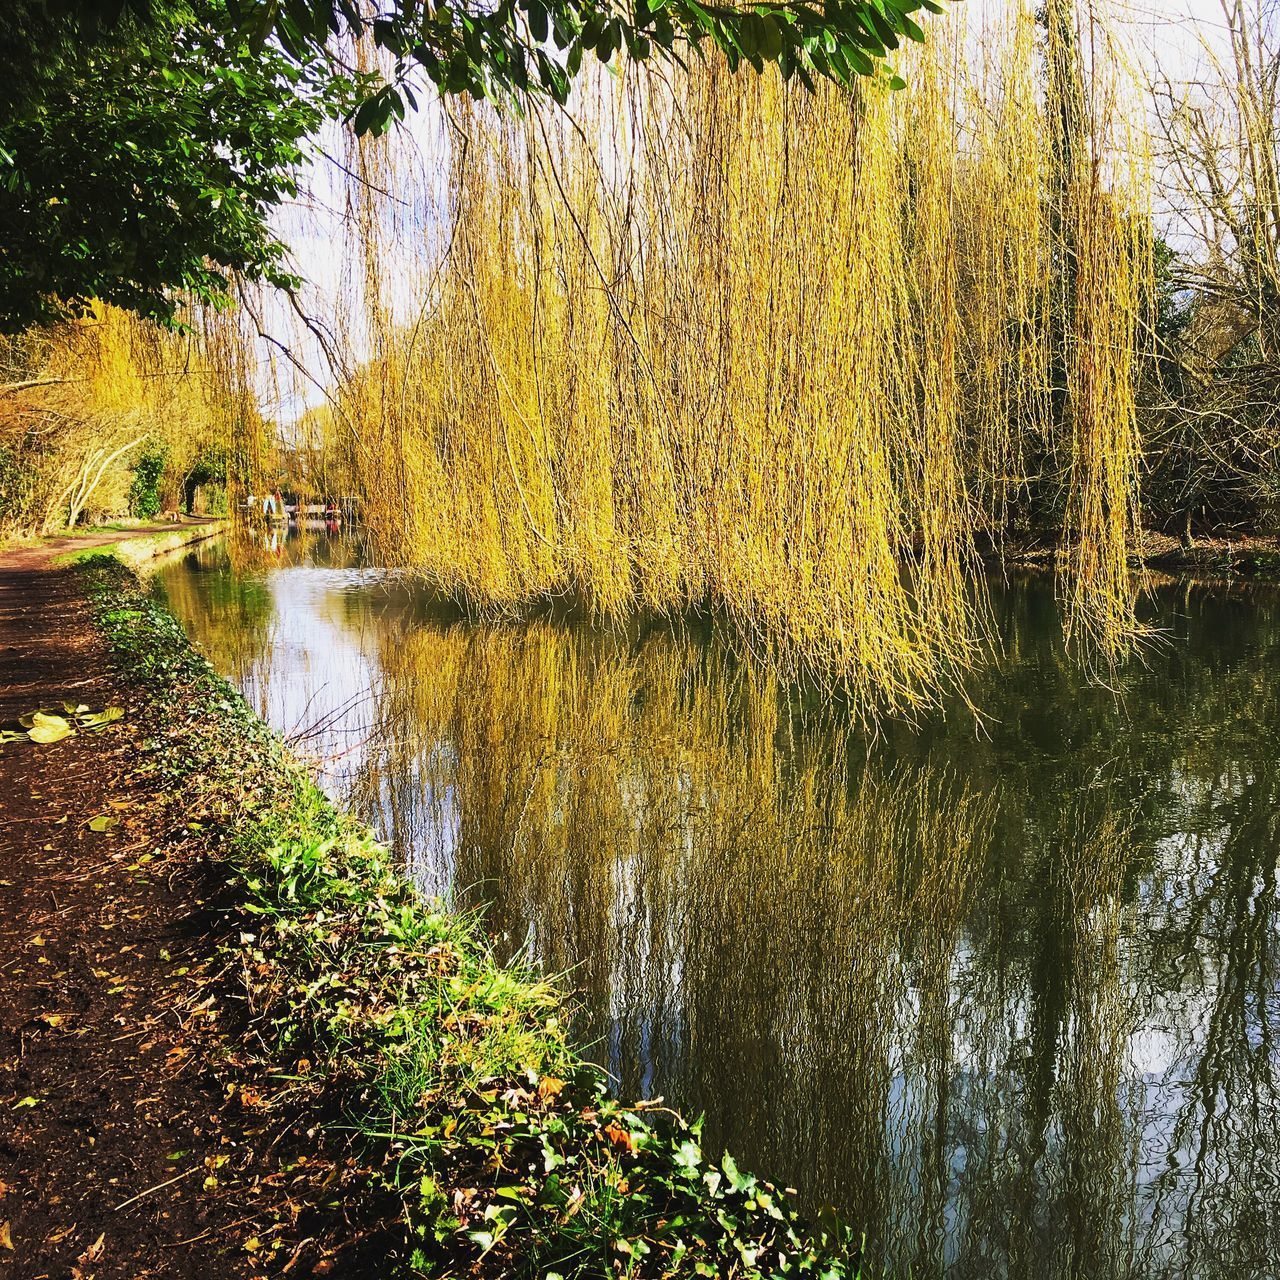 water, plant, tree, lake, tranquility, beauty in nature, growth, tranquil scene, reflection, nature, no people, scenics - nature, day, non-urban scene, green color, outdoors, forest, grass, willow tree